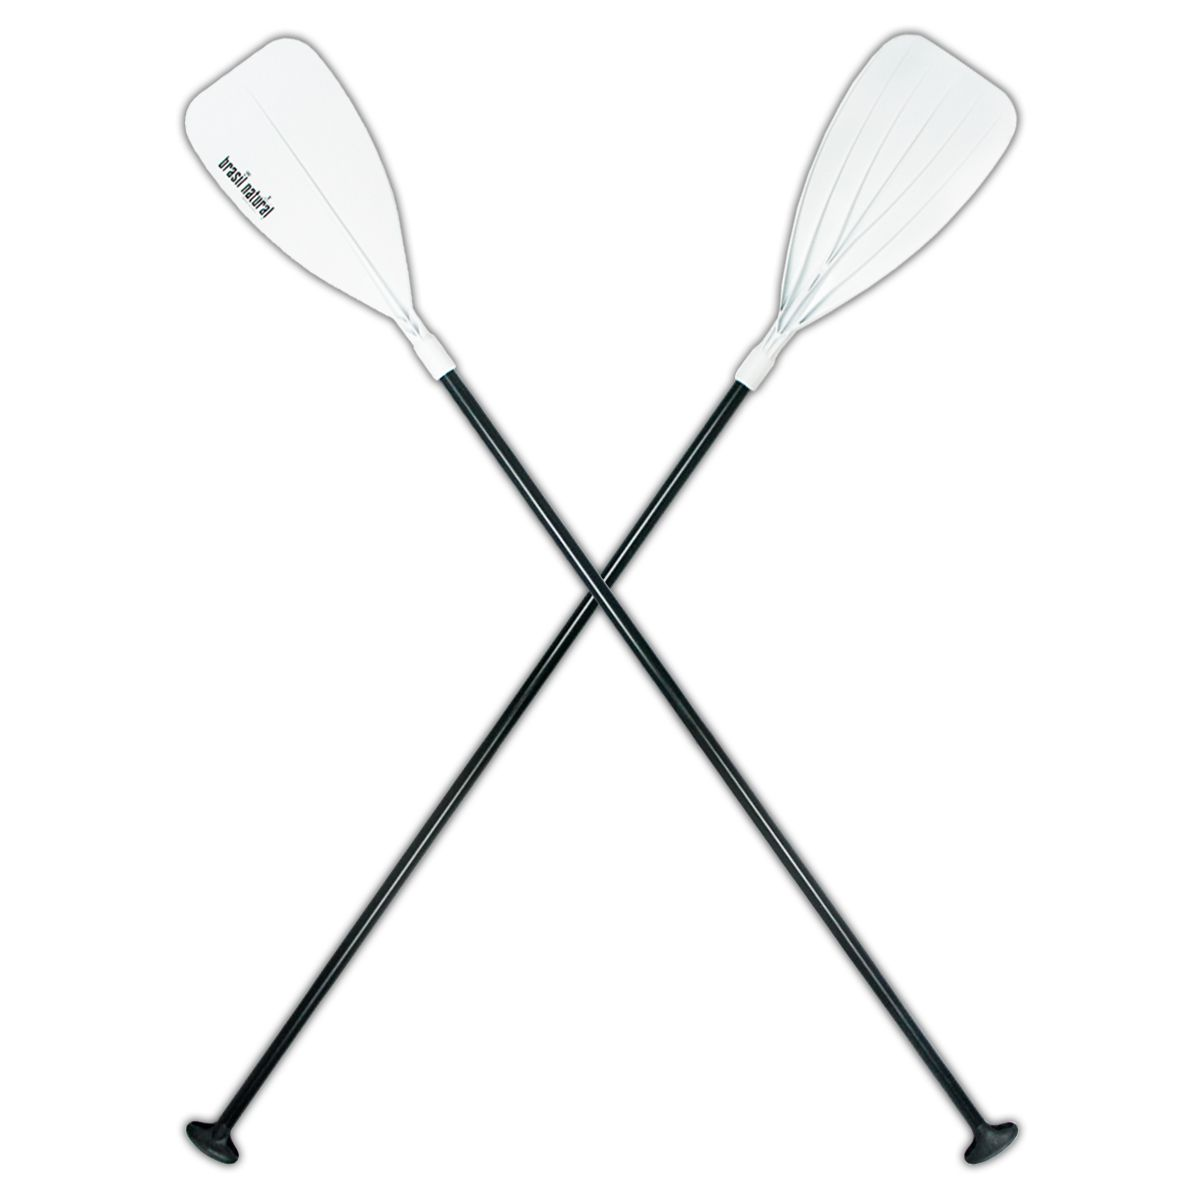 [UPGRADE] Remo adicional para stand up paddle (com ou sem regulagem).